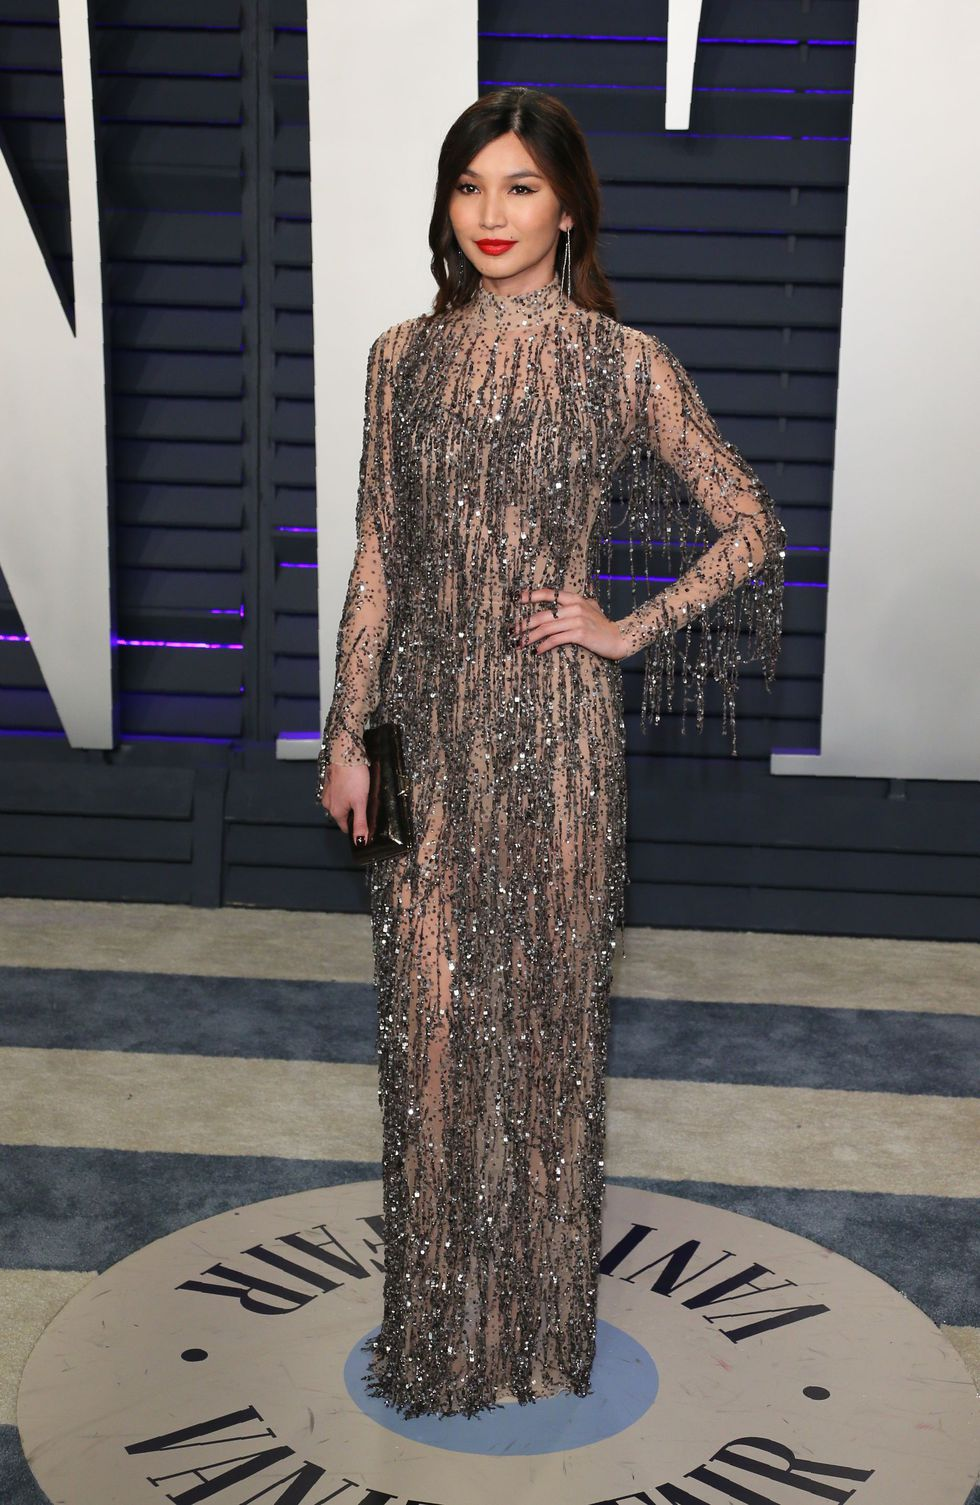 Actress Gemma Chan Attends The 2019 Vanity Fair Oscar Party News Photo 1127324479 1551101529 Fashionismo